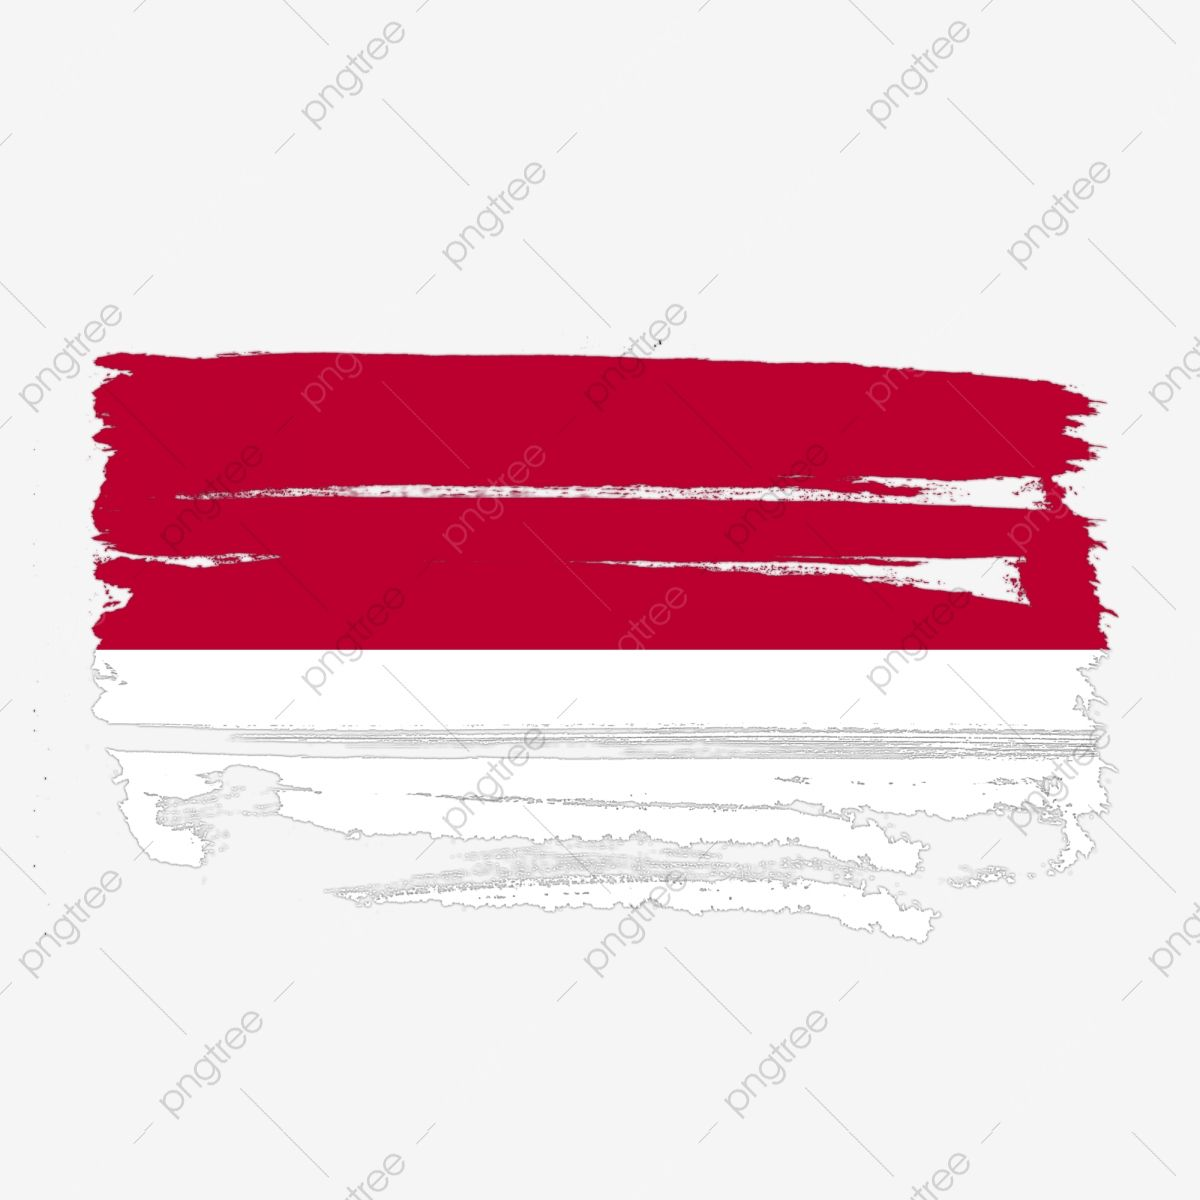 Indonesia Flag Transparent With Watercolor Paint Brush Indonesia Indonesia Flag Indonesia Flag Vector Png Transparent Clipart Image And Psd File For Free Dow Indonesia Flag Flag Vector Watercolour Painting